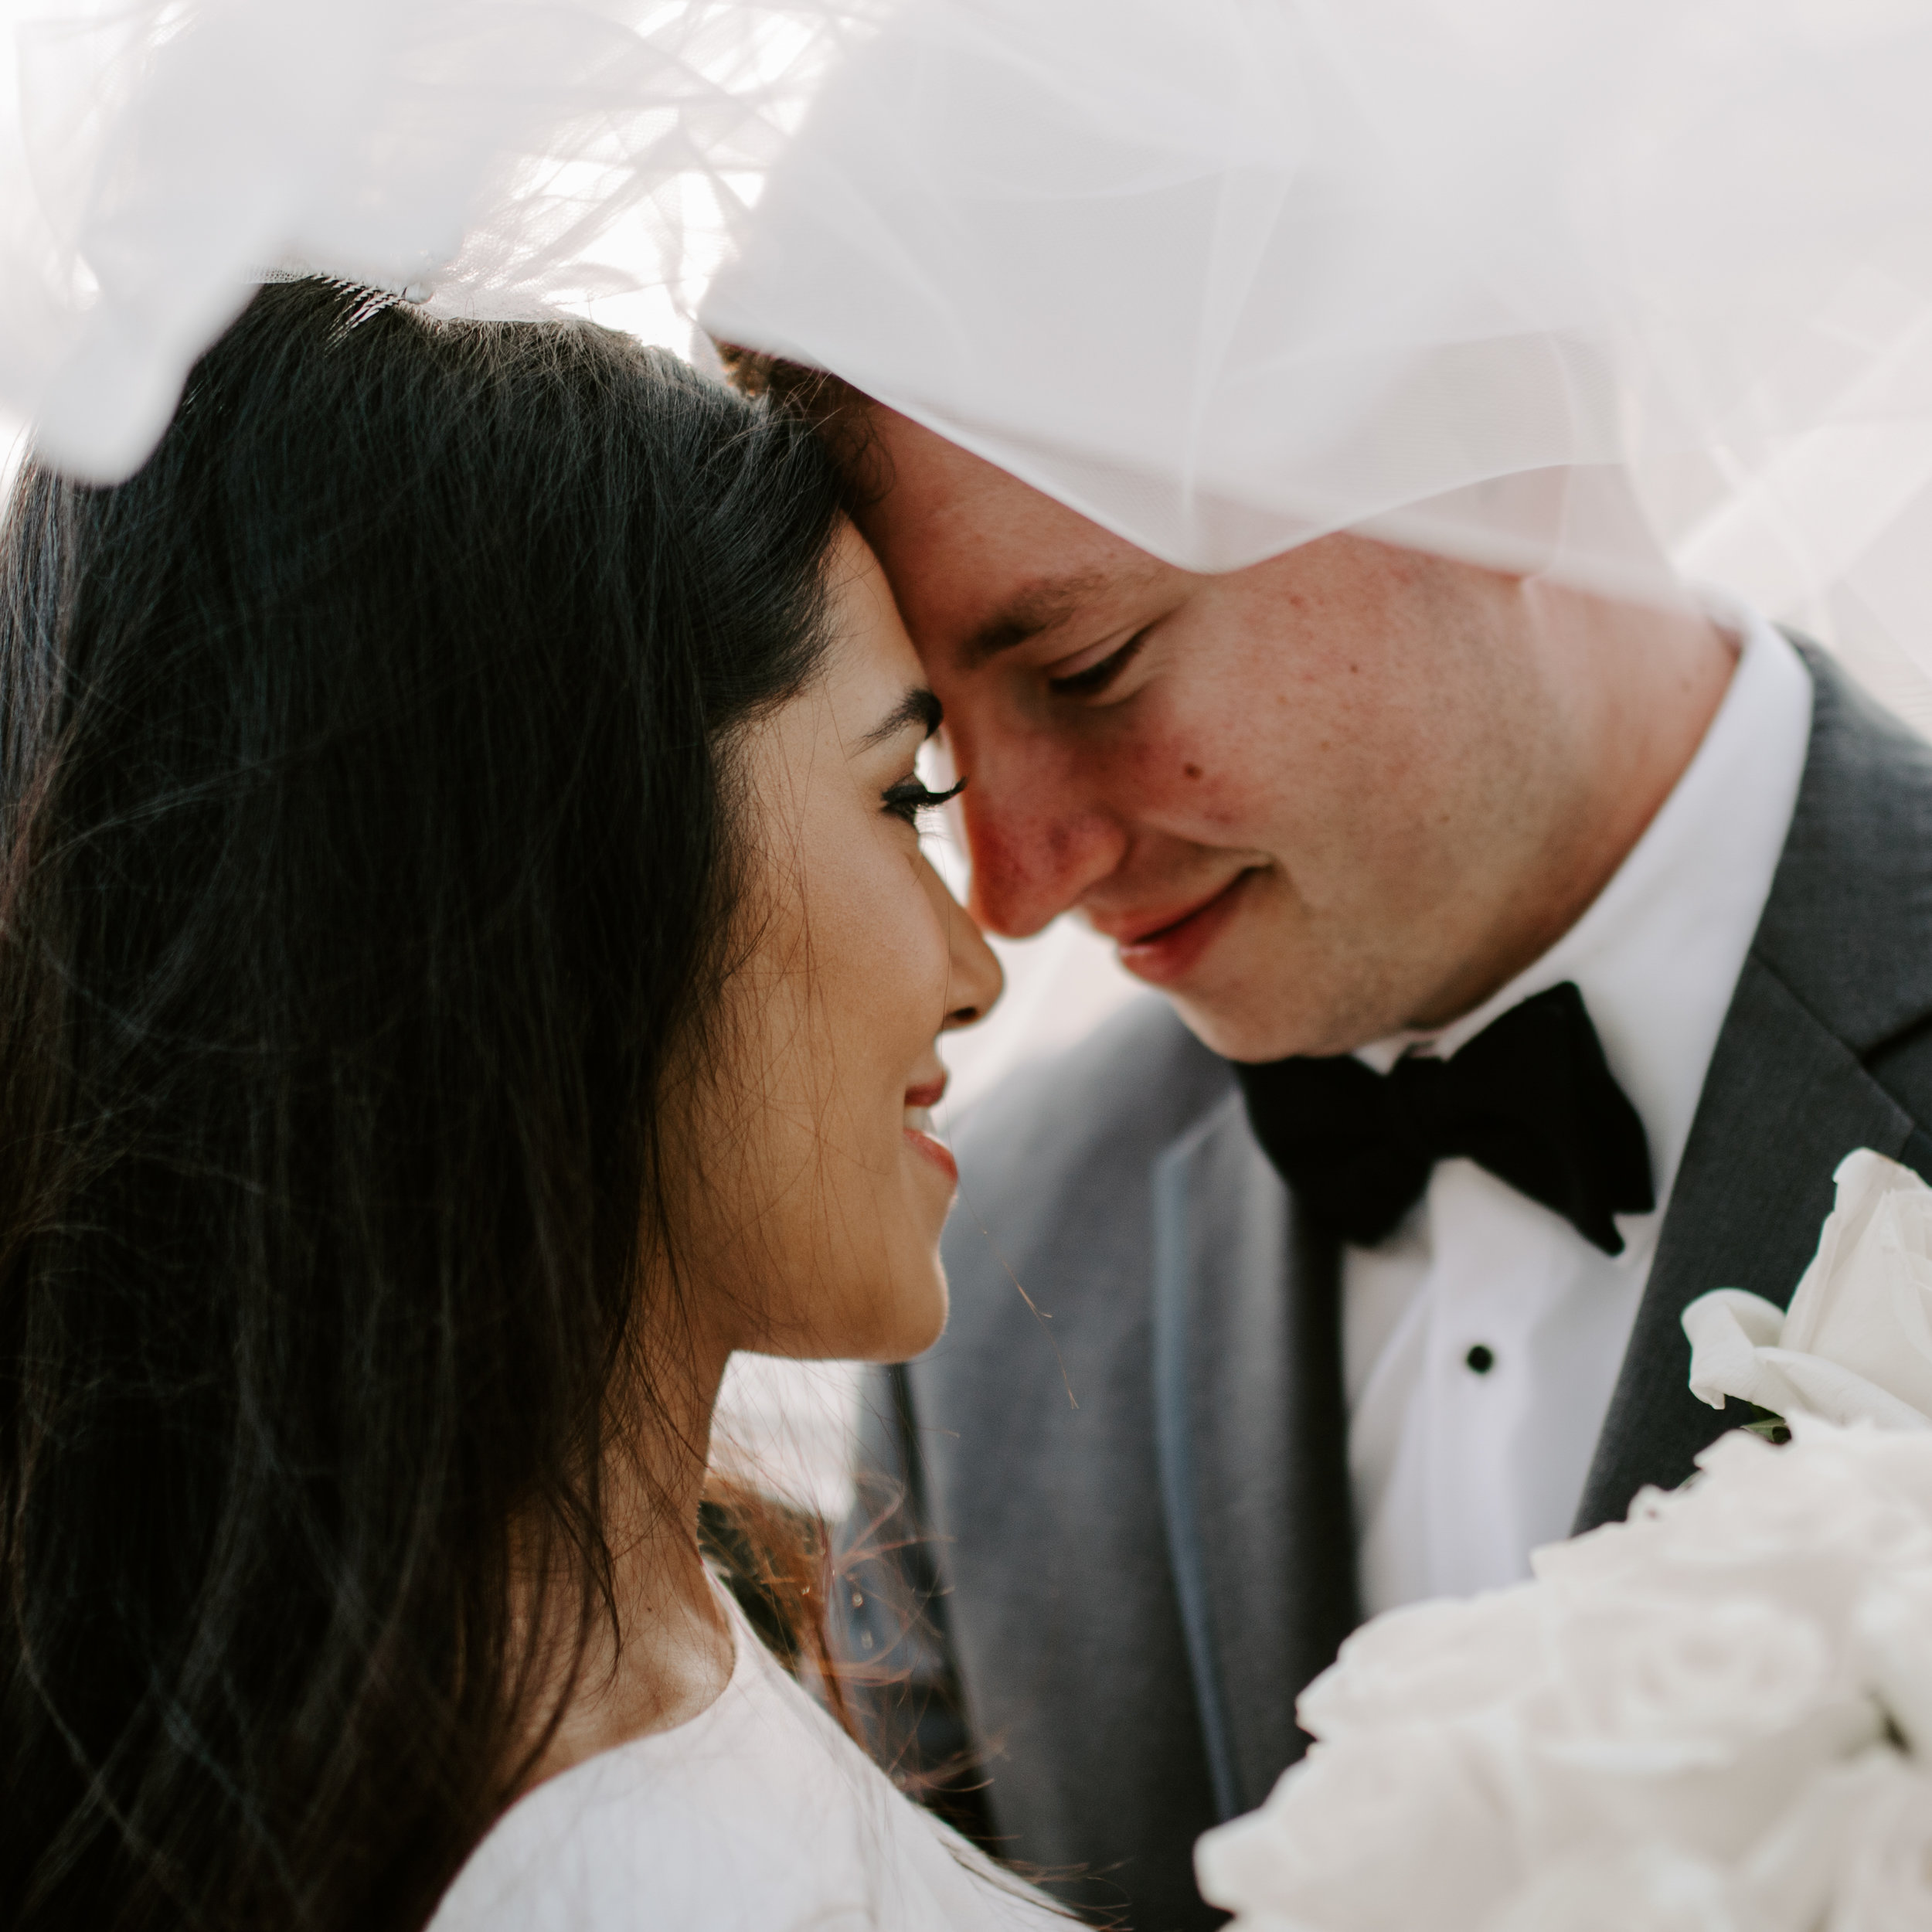 Midwest Bride and Groom Veil Shot by Kerri Carlquist Photography